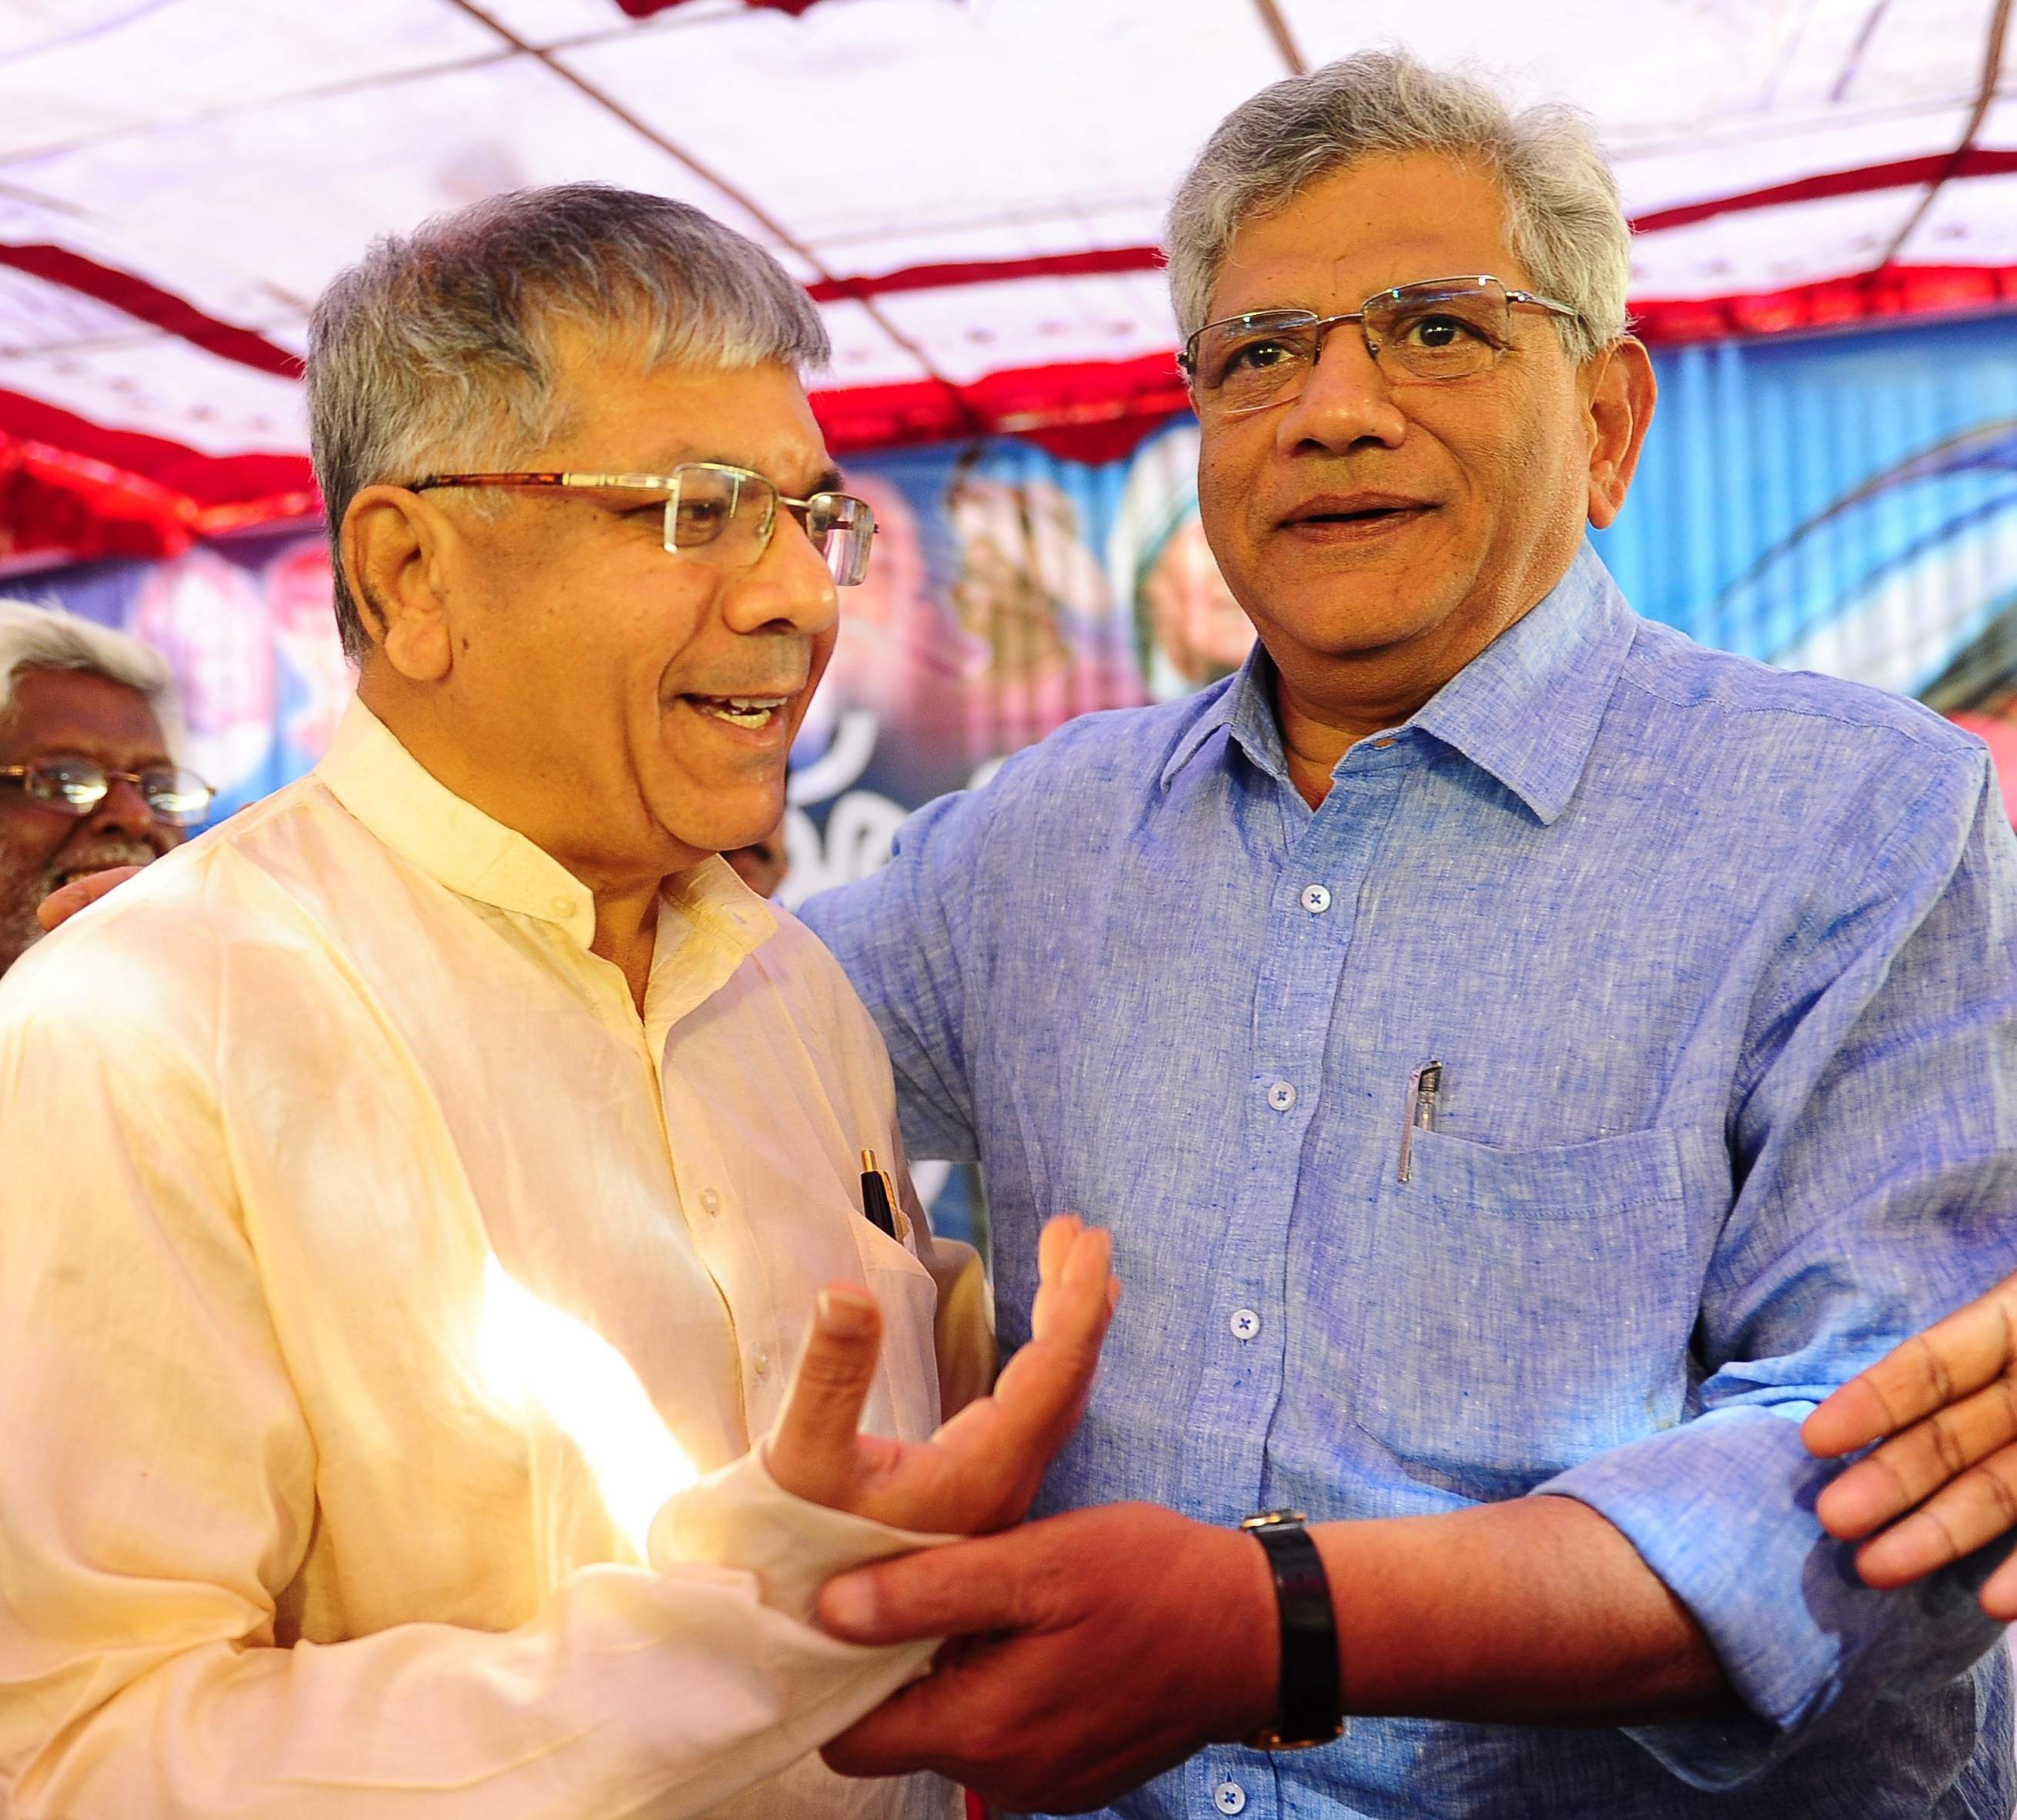 Prakash Ambedkar grandson of BR Ambedkar the architect of the Indian Constitution is a Maharashtrian. Here he is seen at a Dalit Swabhimaan Rally in Bengaluru in November 2016 along with CPI General Secretary Sitaram Yechury- Express